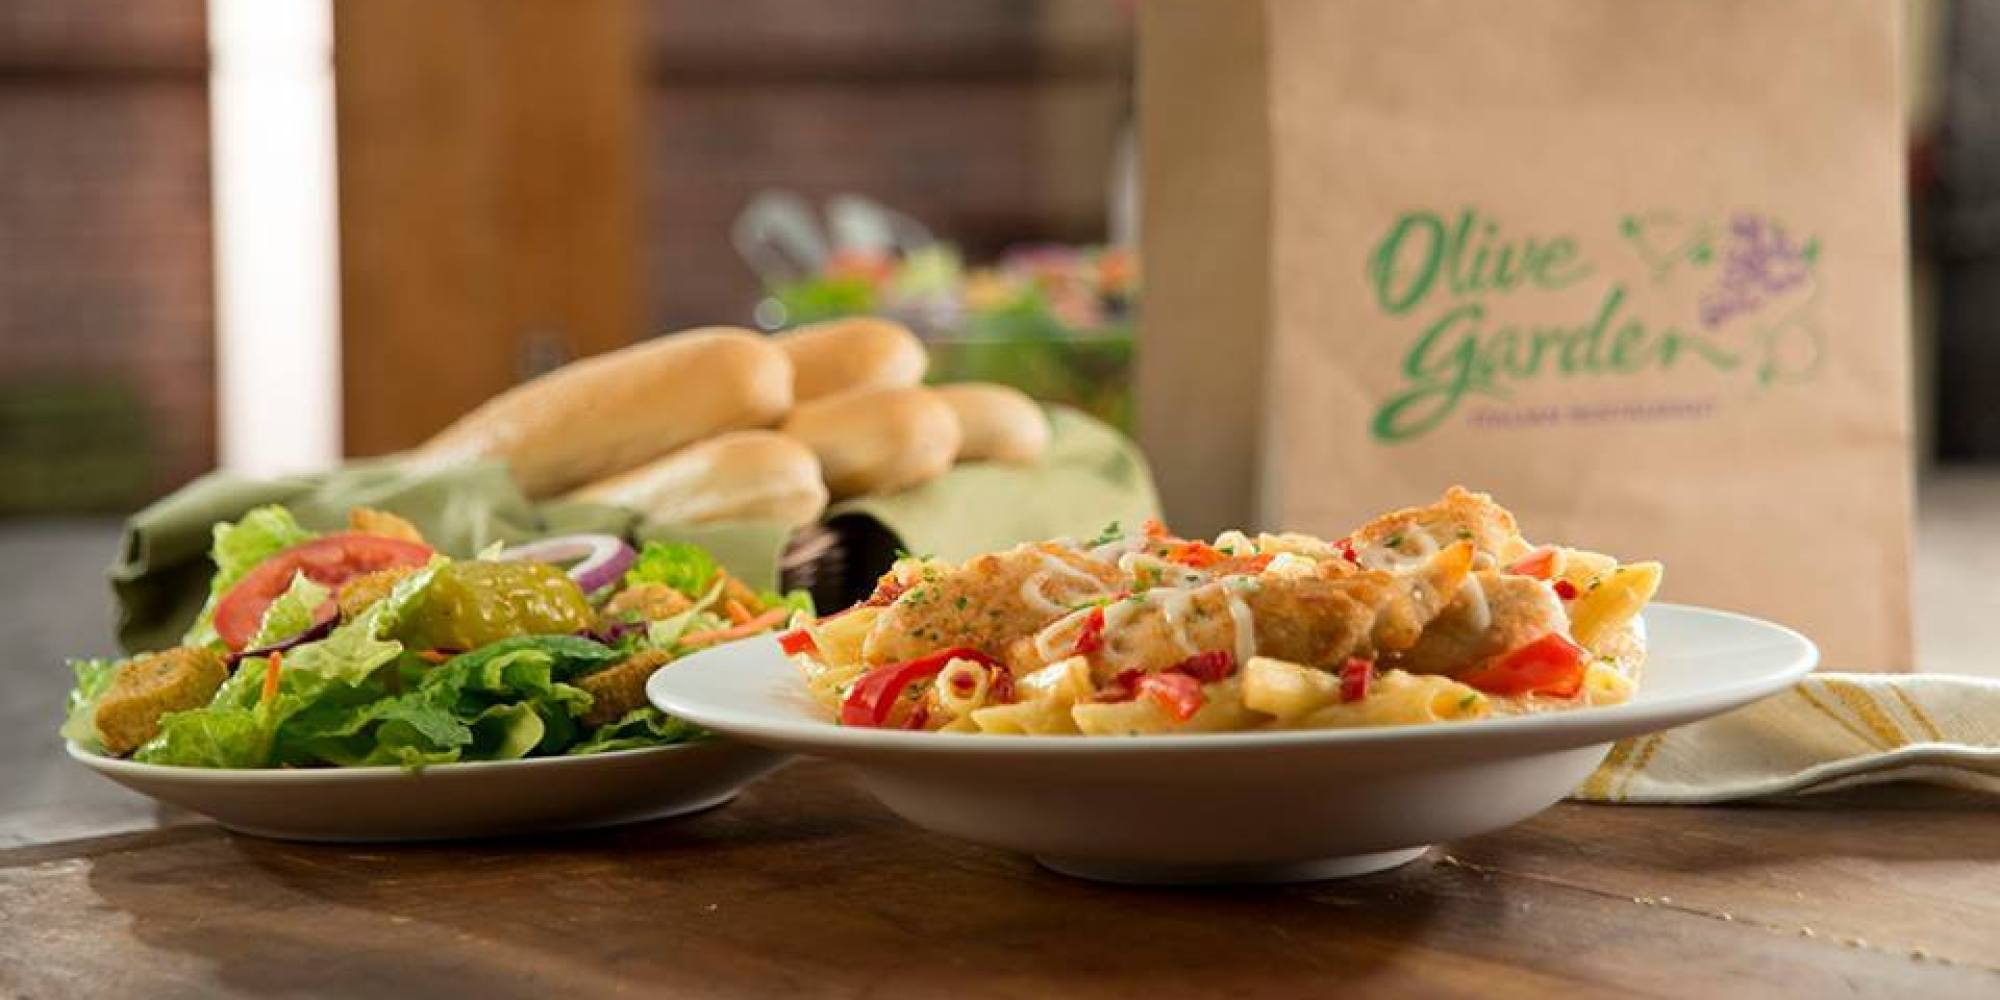 Olive Garden Chino - Home Design Ideas and Inspiration